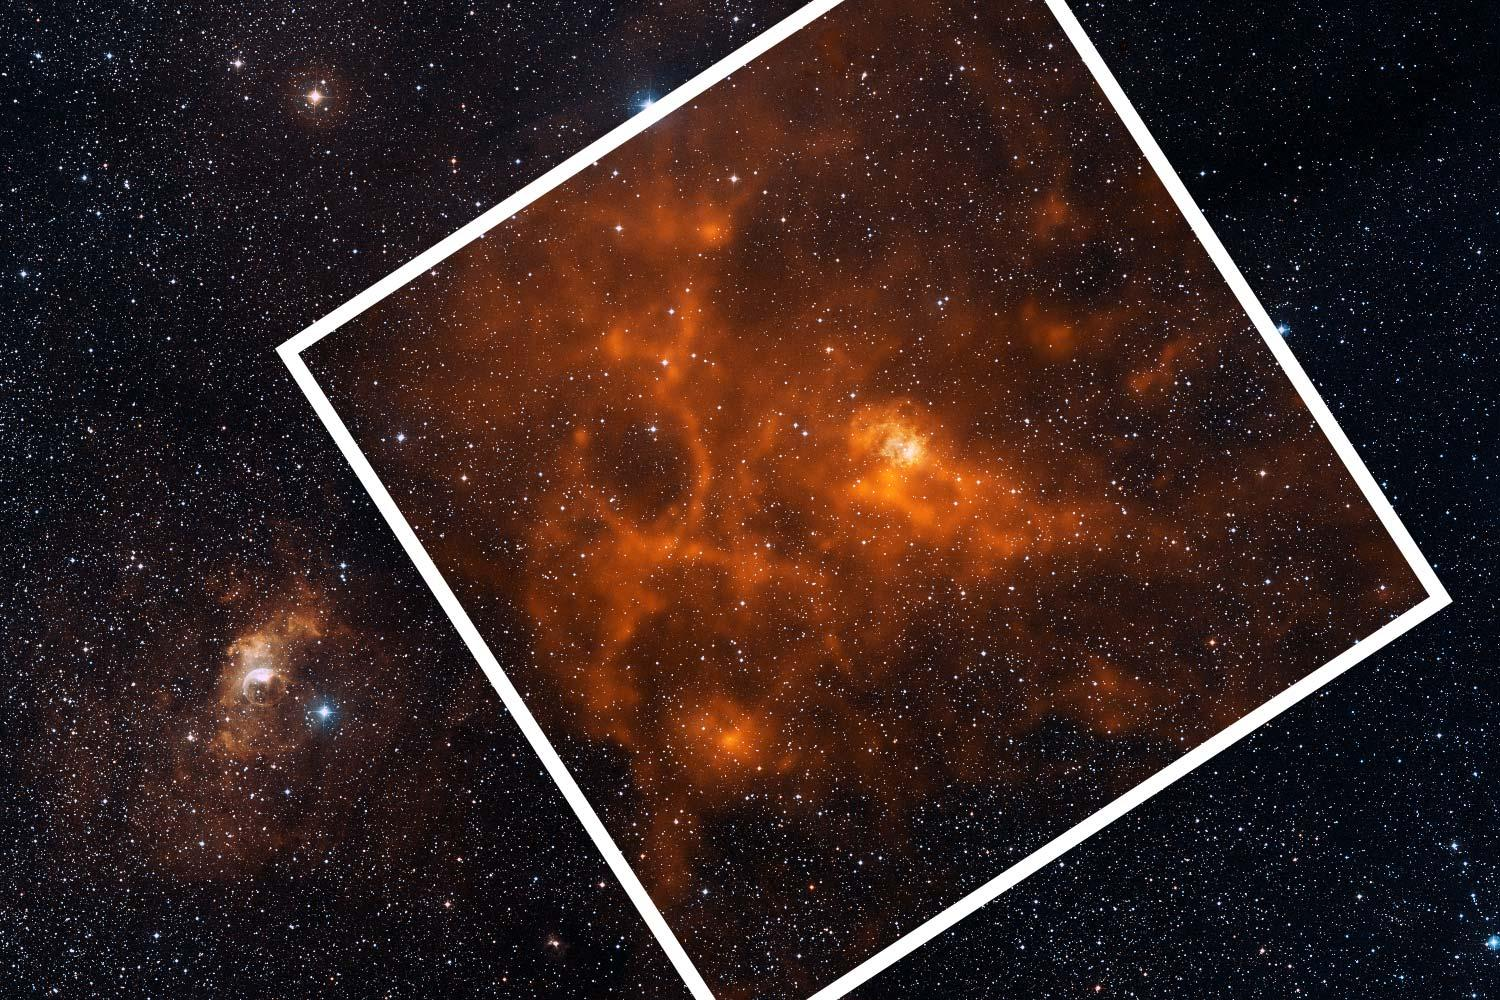 Interstellar dust, which shines brightly in infrared light (seen here in orange), is the material from which all stars and planets form.